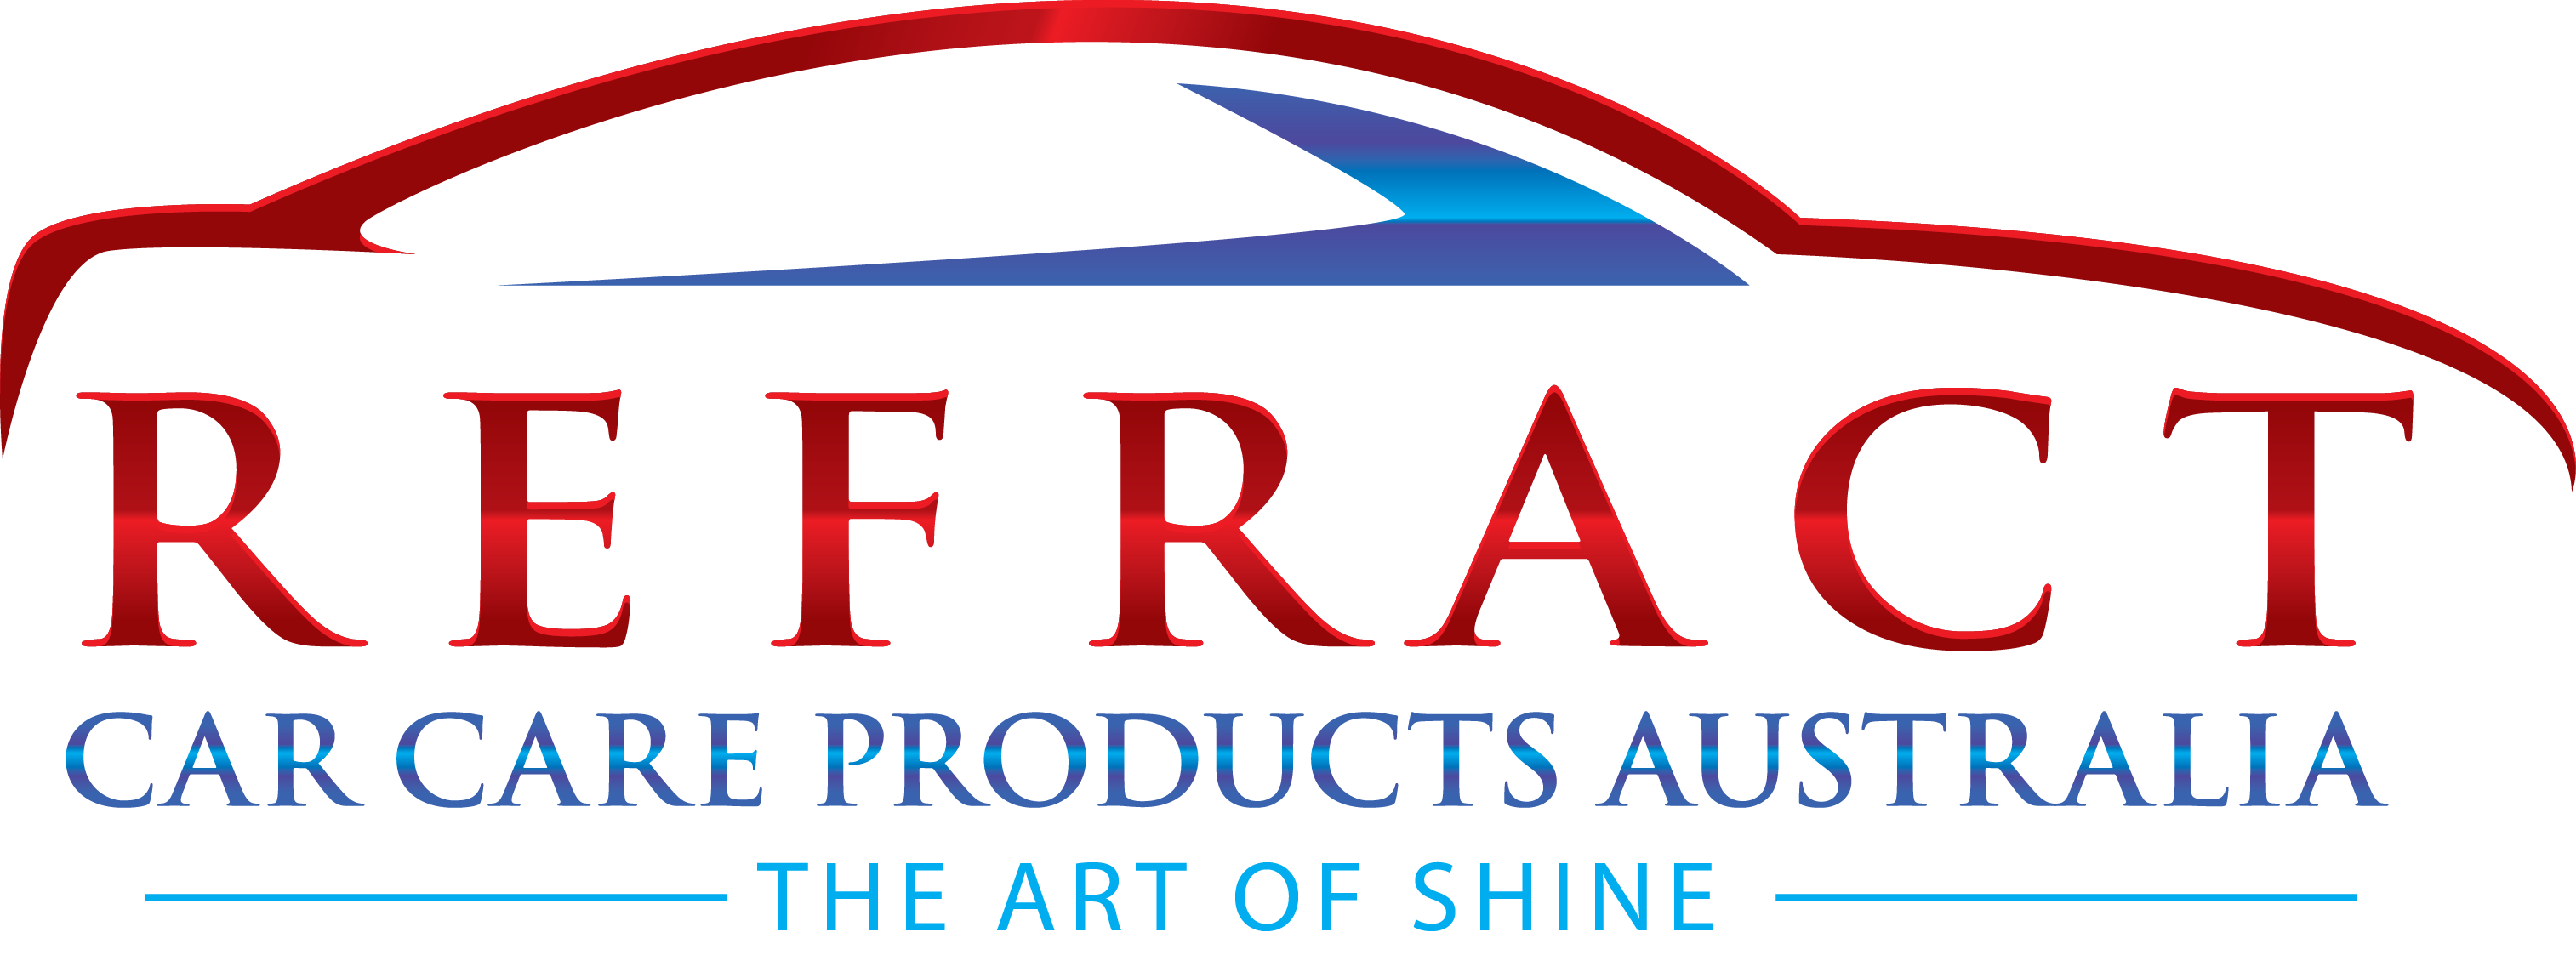 Refract Car Care Products Australia Polishing Paint Correct Sale New Best Buy Online Near Me Postage Fast Express Free Shop 2